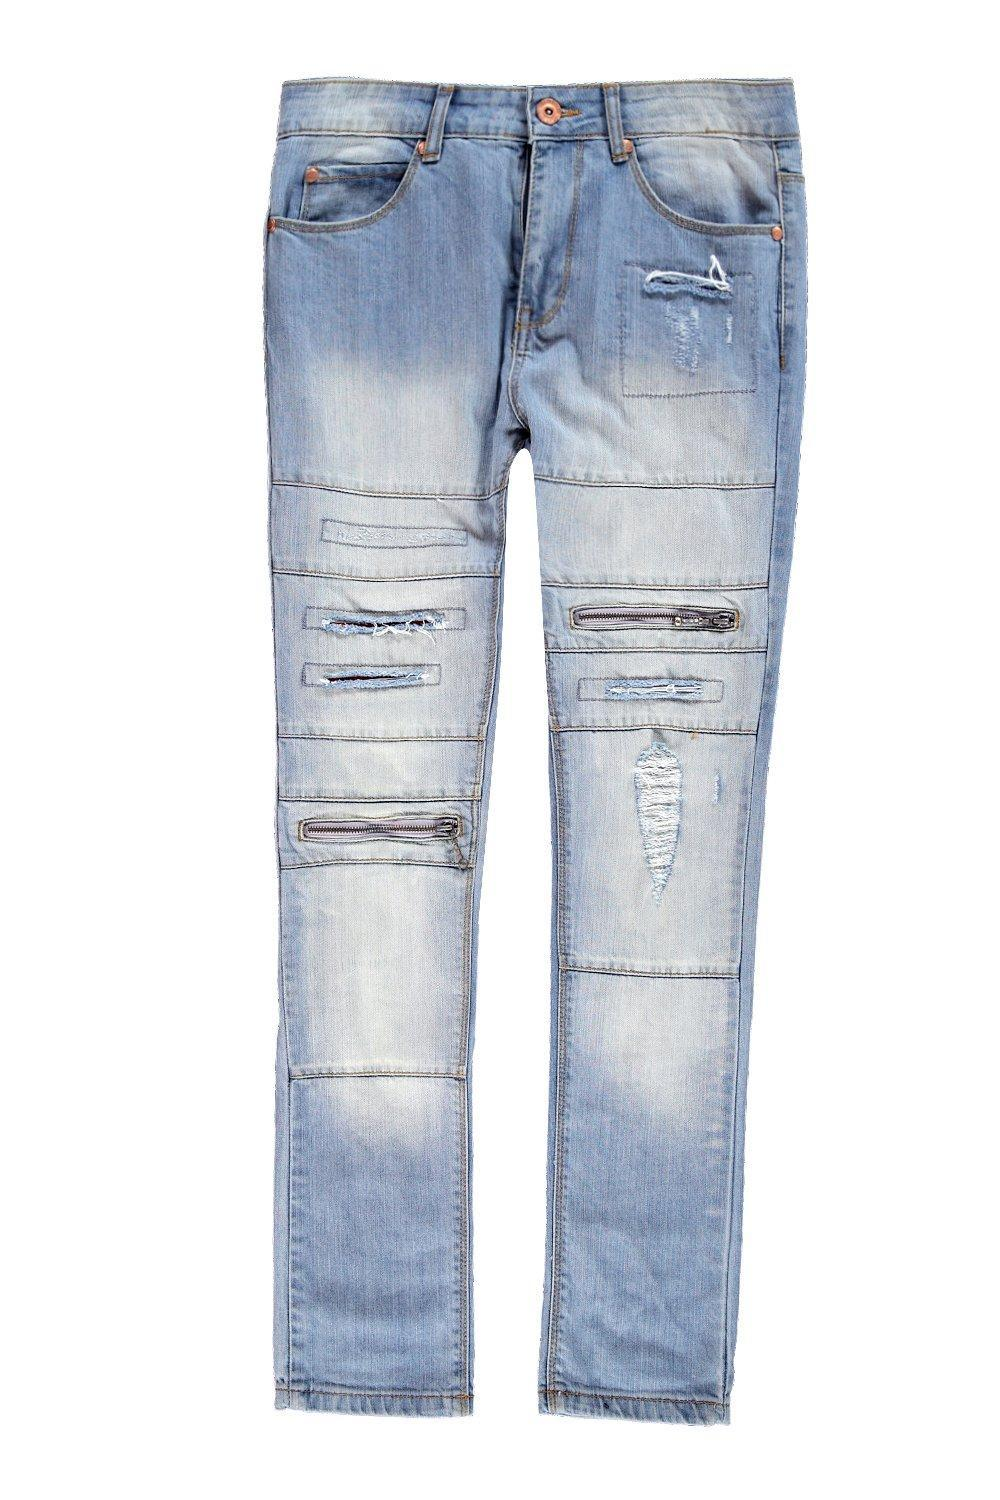 Boohoo Denim Spray On Skinny Jeans With Zips & Distressing in Light Blue (Blue) for Men